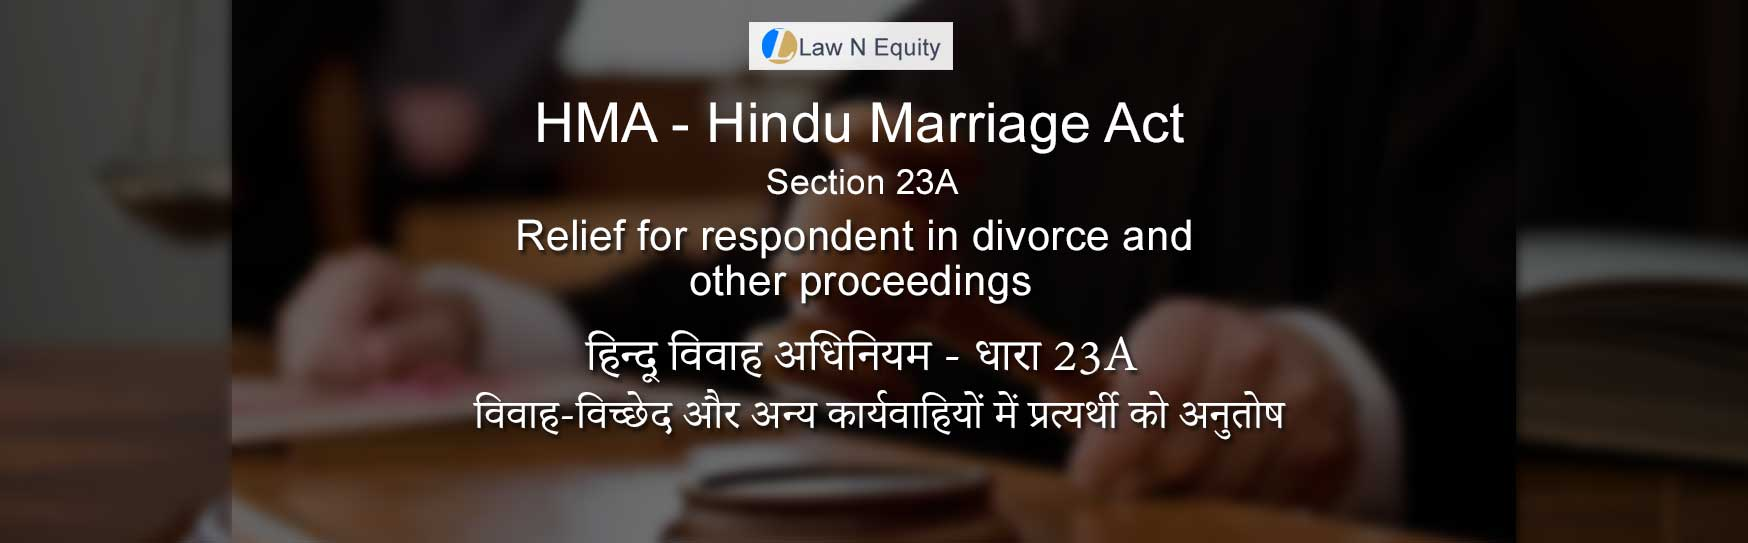 Hindu Marriage Act(HMA) Section 23A